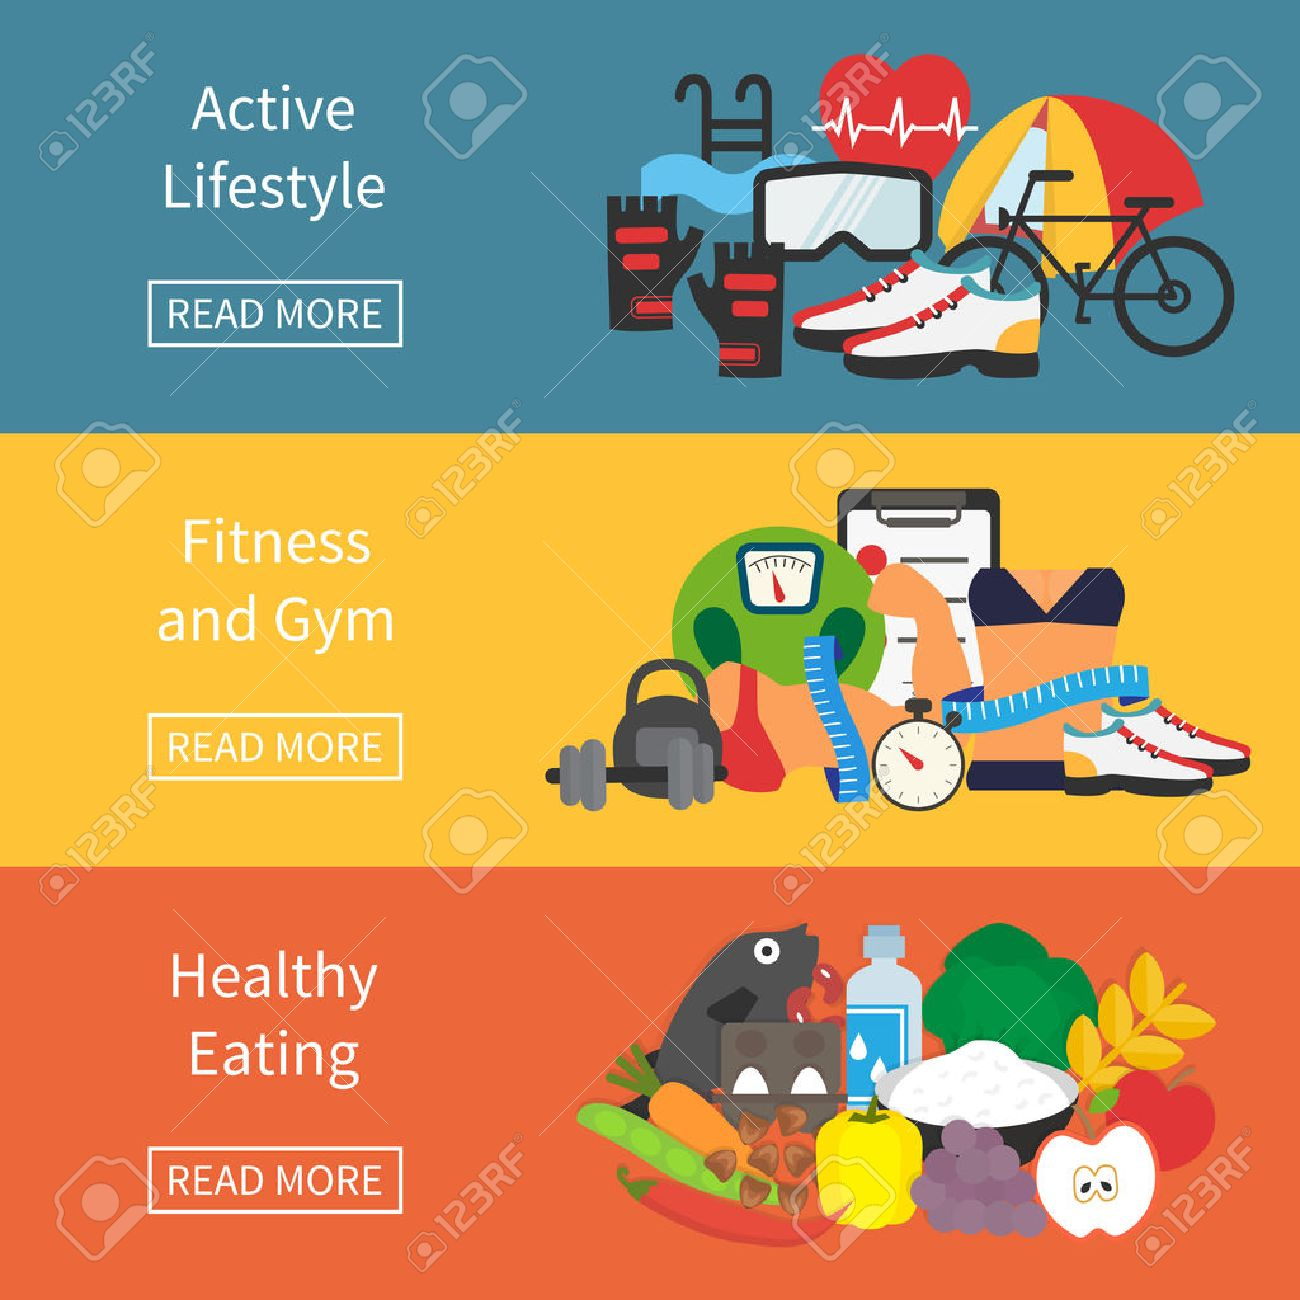 Healthy lifestyle banner. Fitness, healthy food and active living. Flat design vector illustration. Stock Vector - 47194232